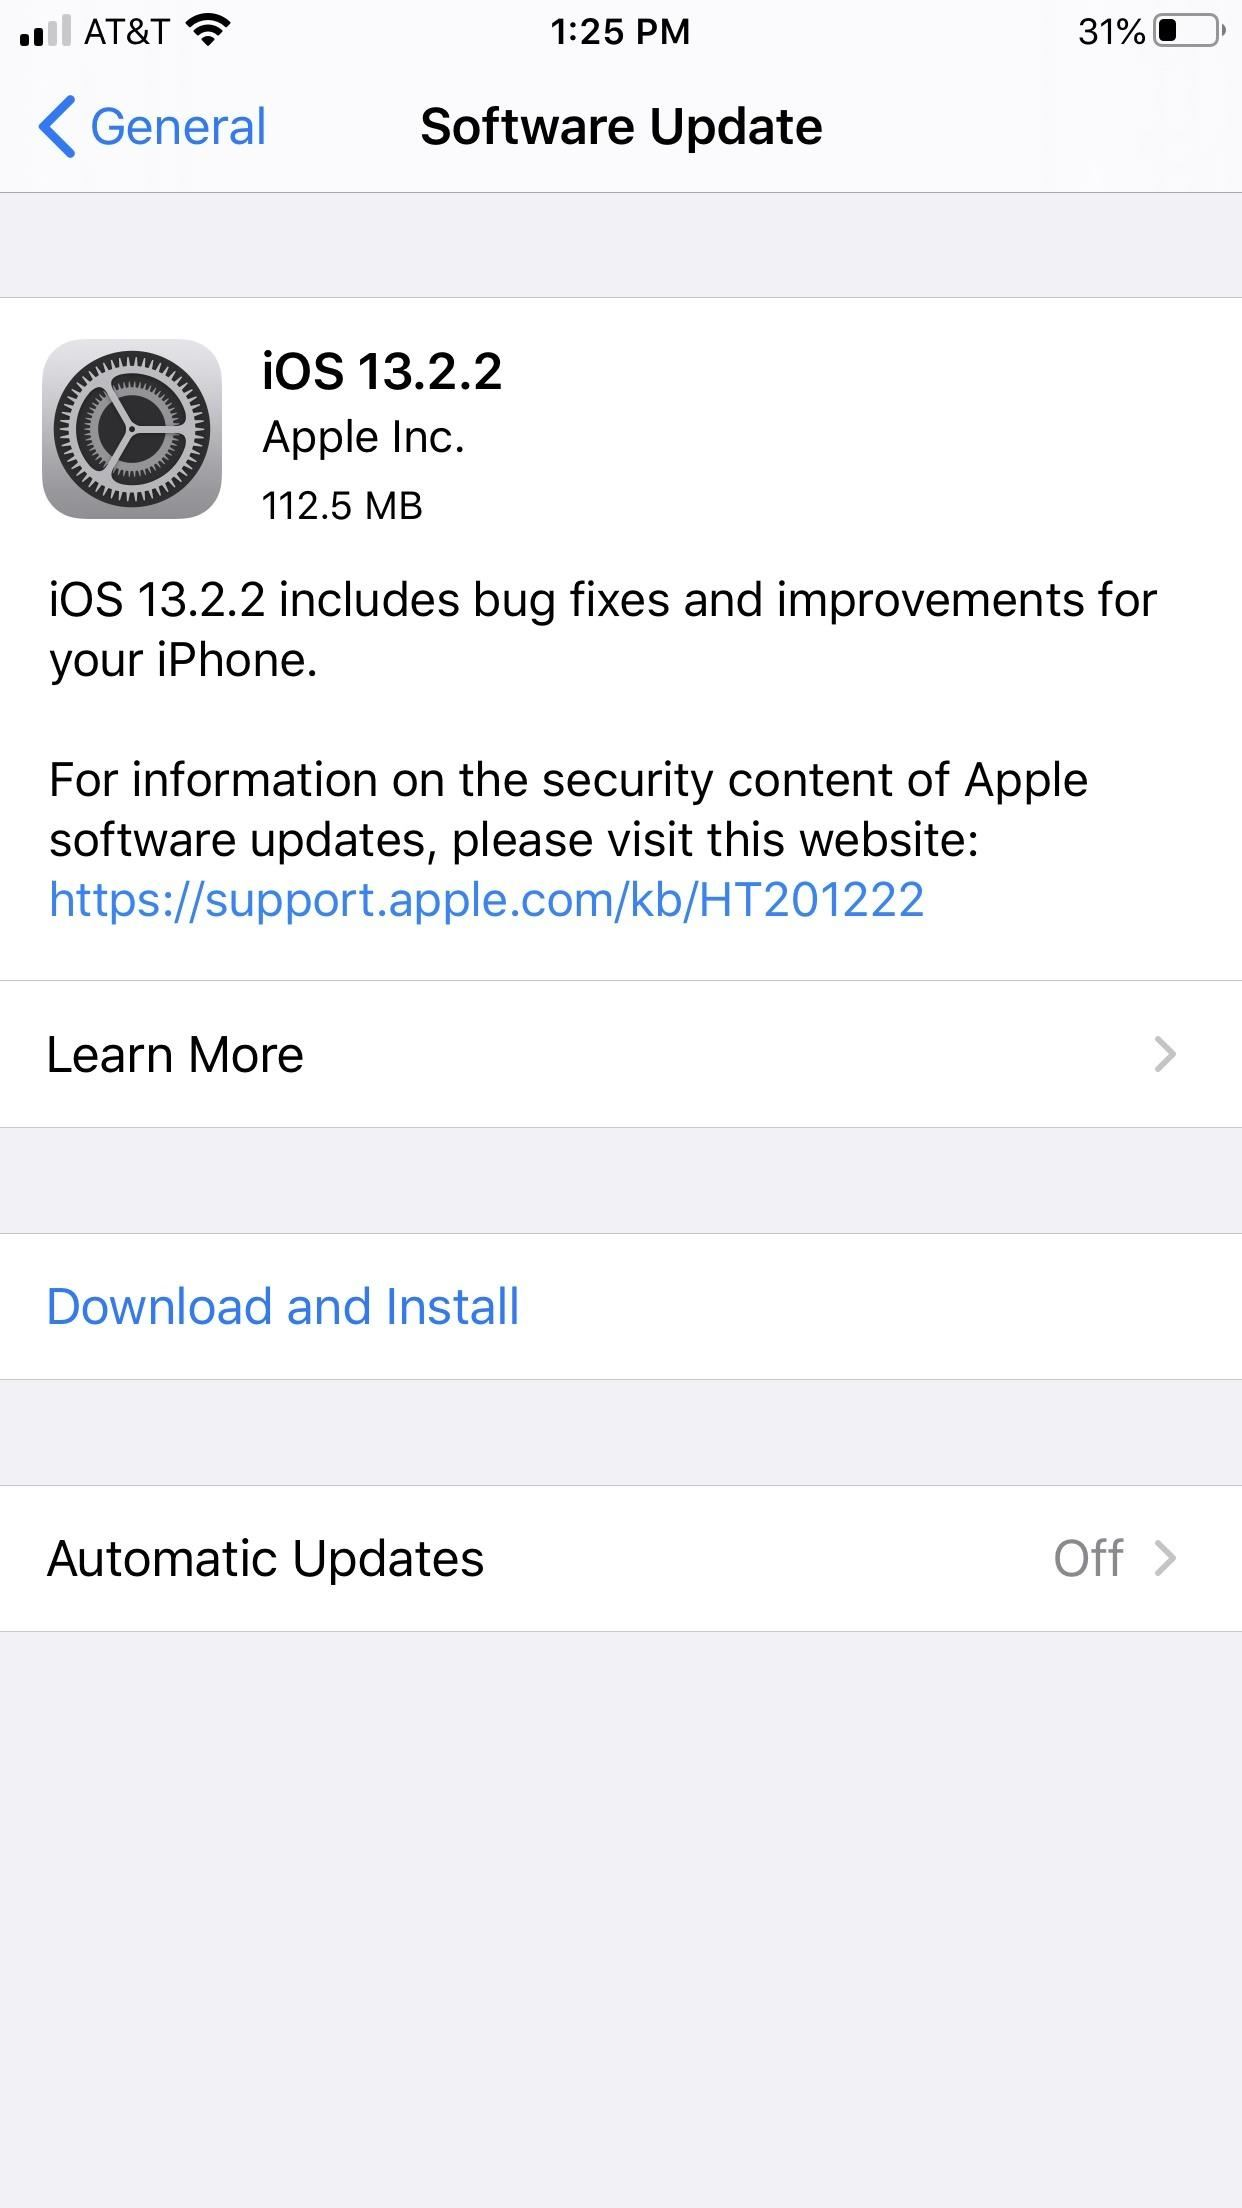 Apple Releases iOS 13.2.2 to iPhones, Includes Fixes for Multitasking Bug and Dropped Cell Signal